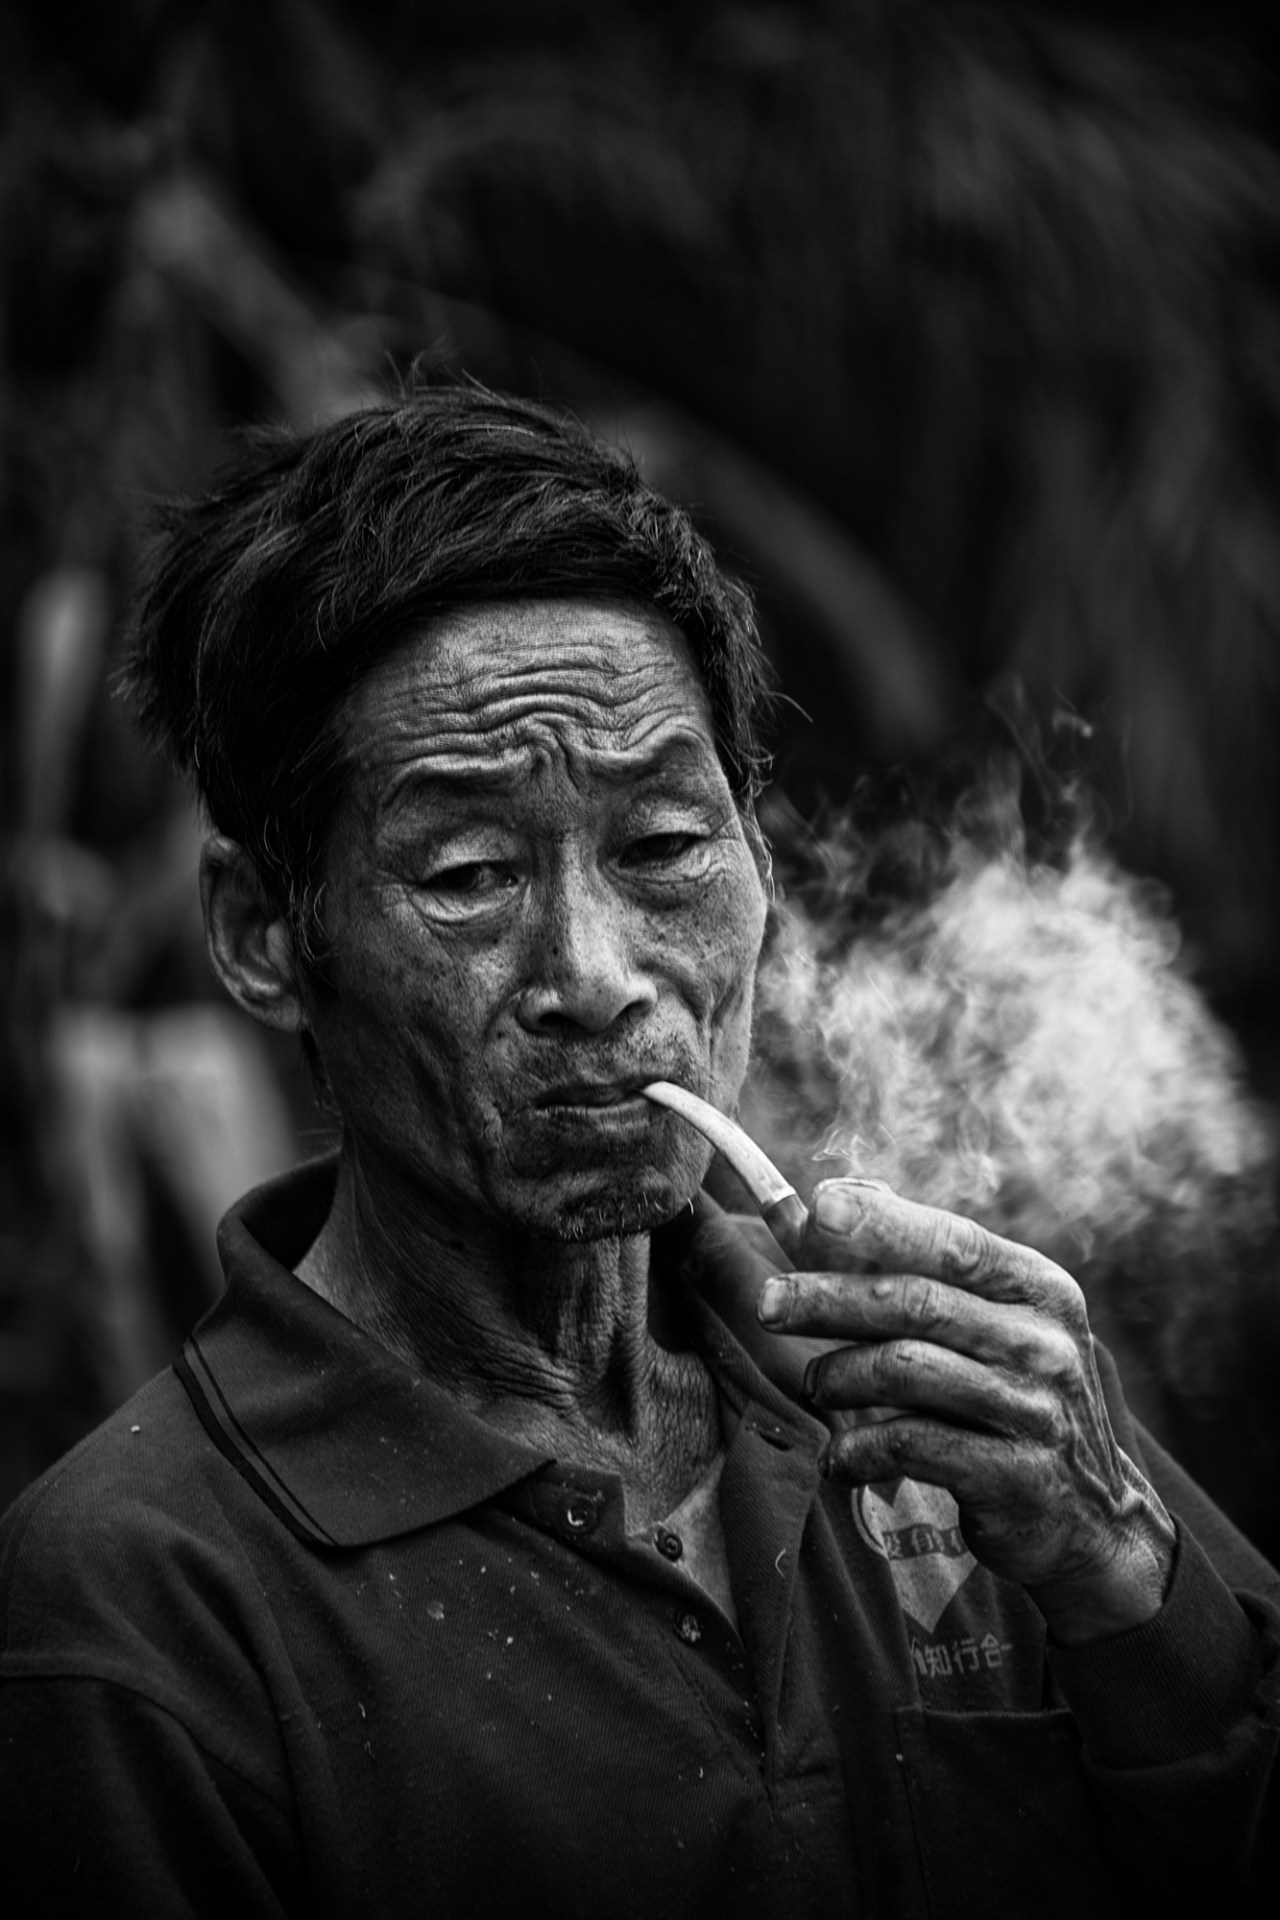 puffing in contemplation